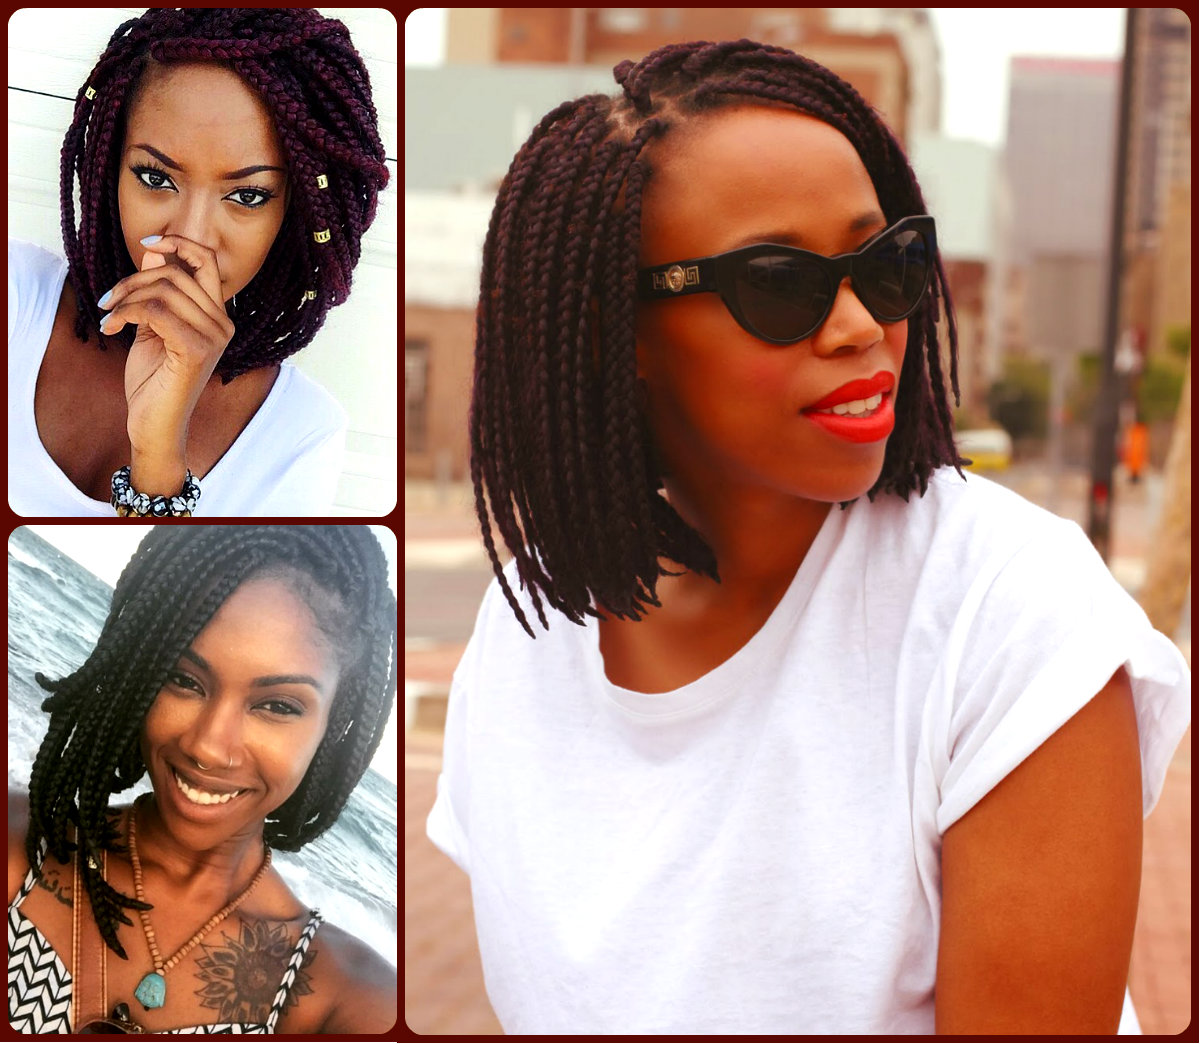 Bob short box braids